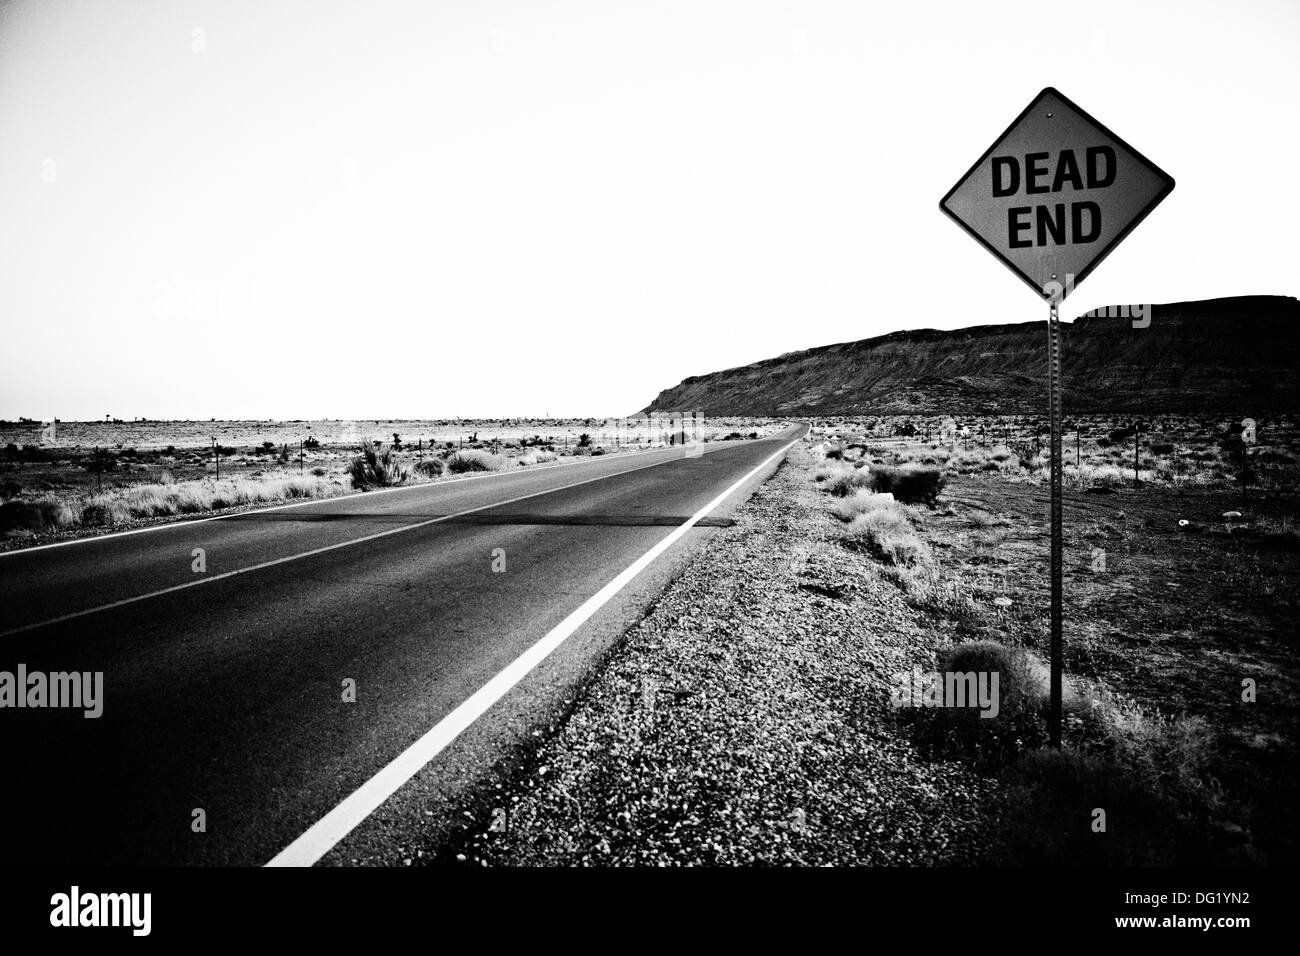 Dead End Sign Along Desert Highway, Nevada, USA - Stock Image